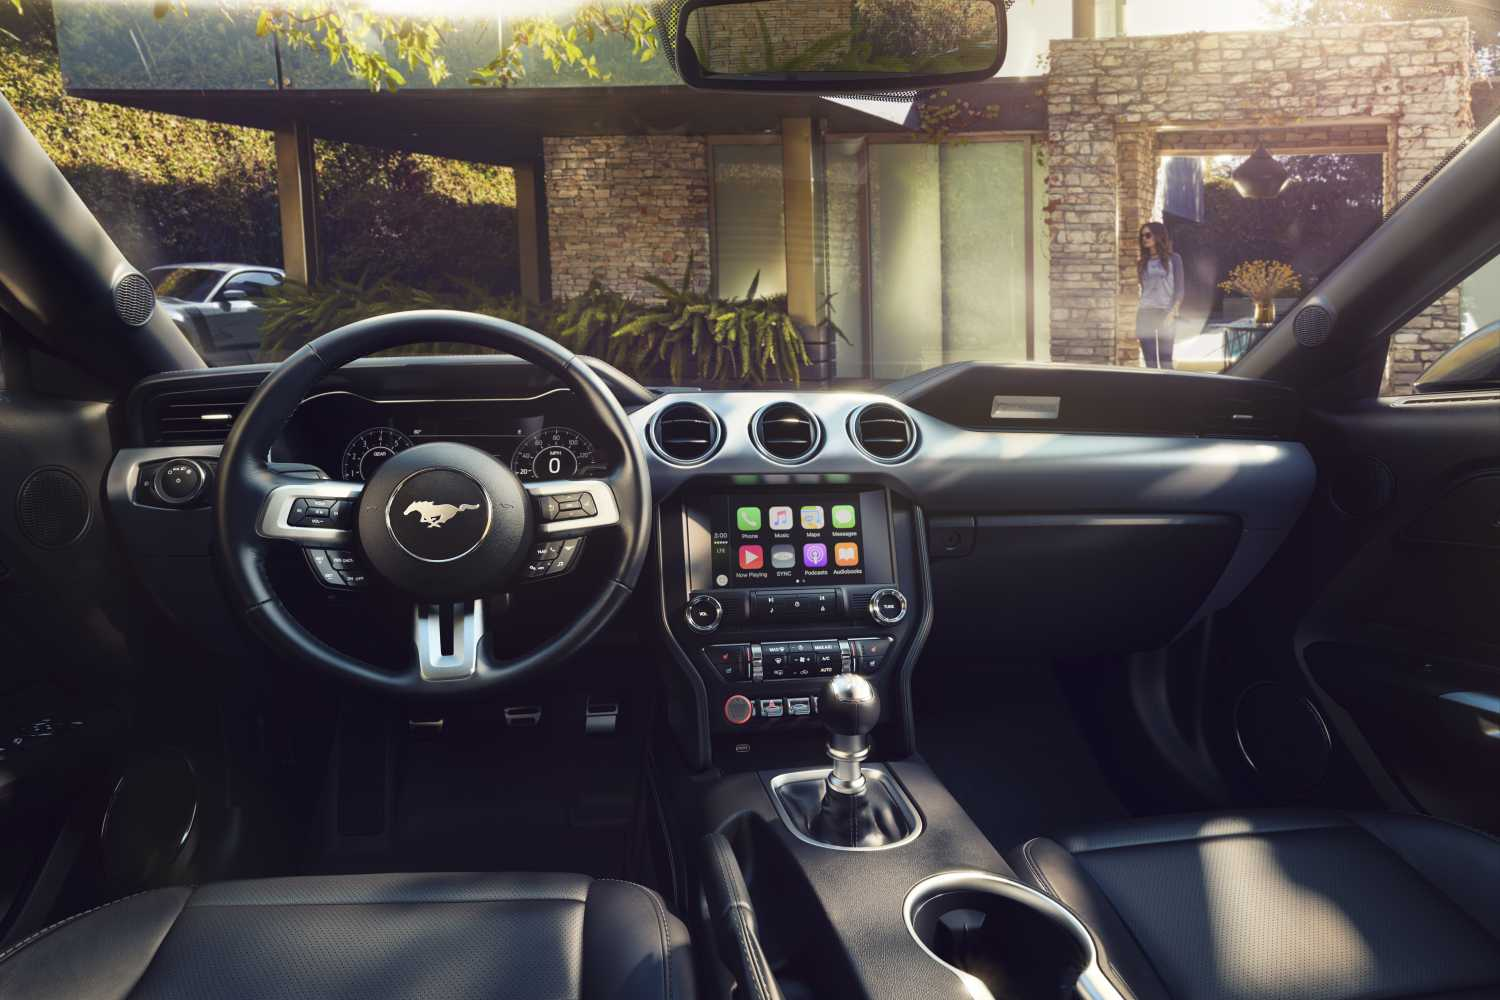 2018 Ford Mustang Interior Wide